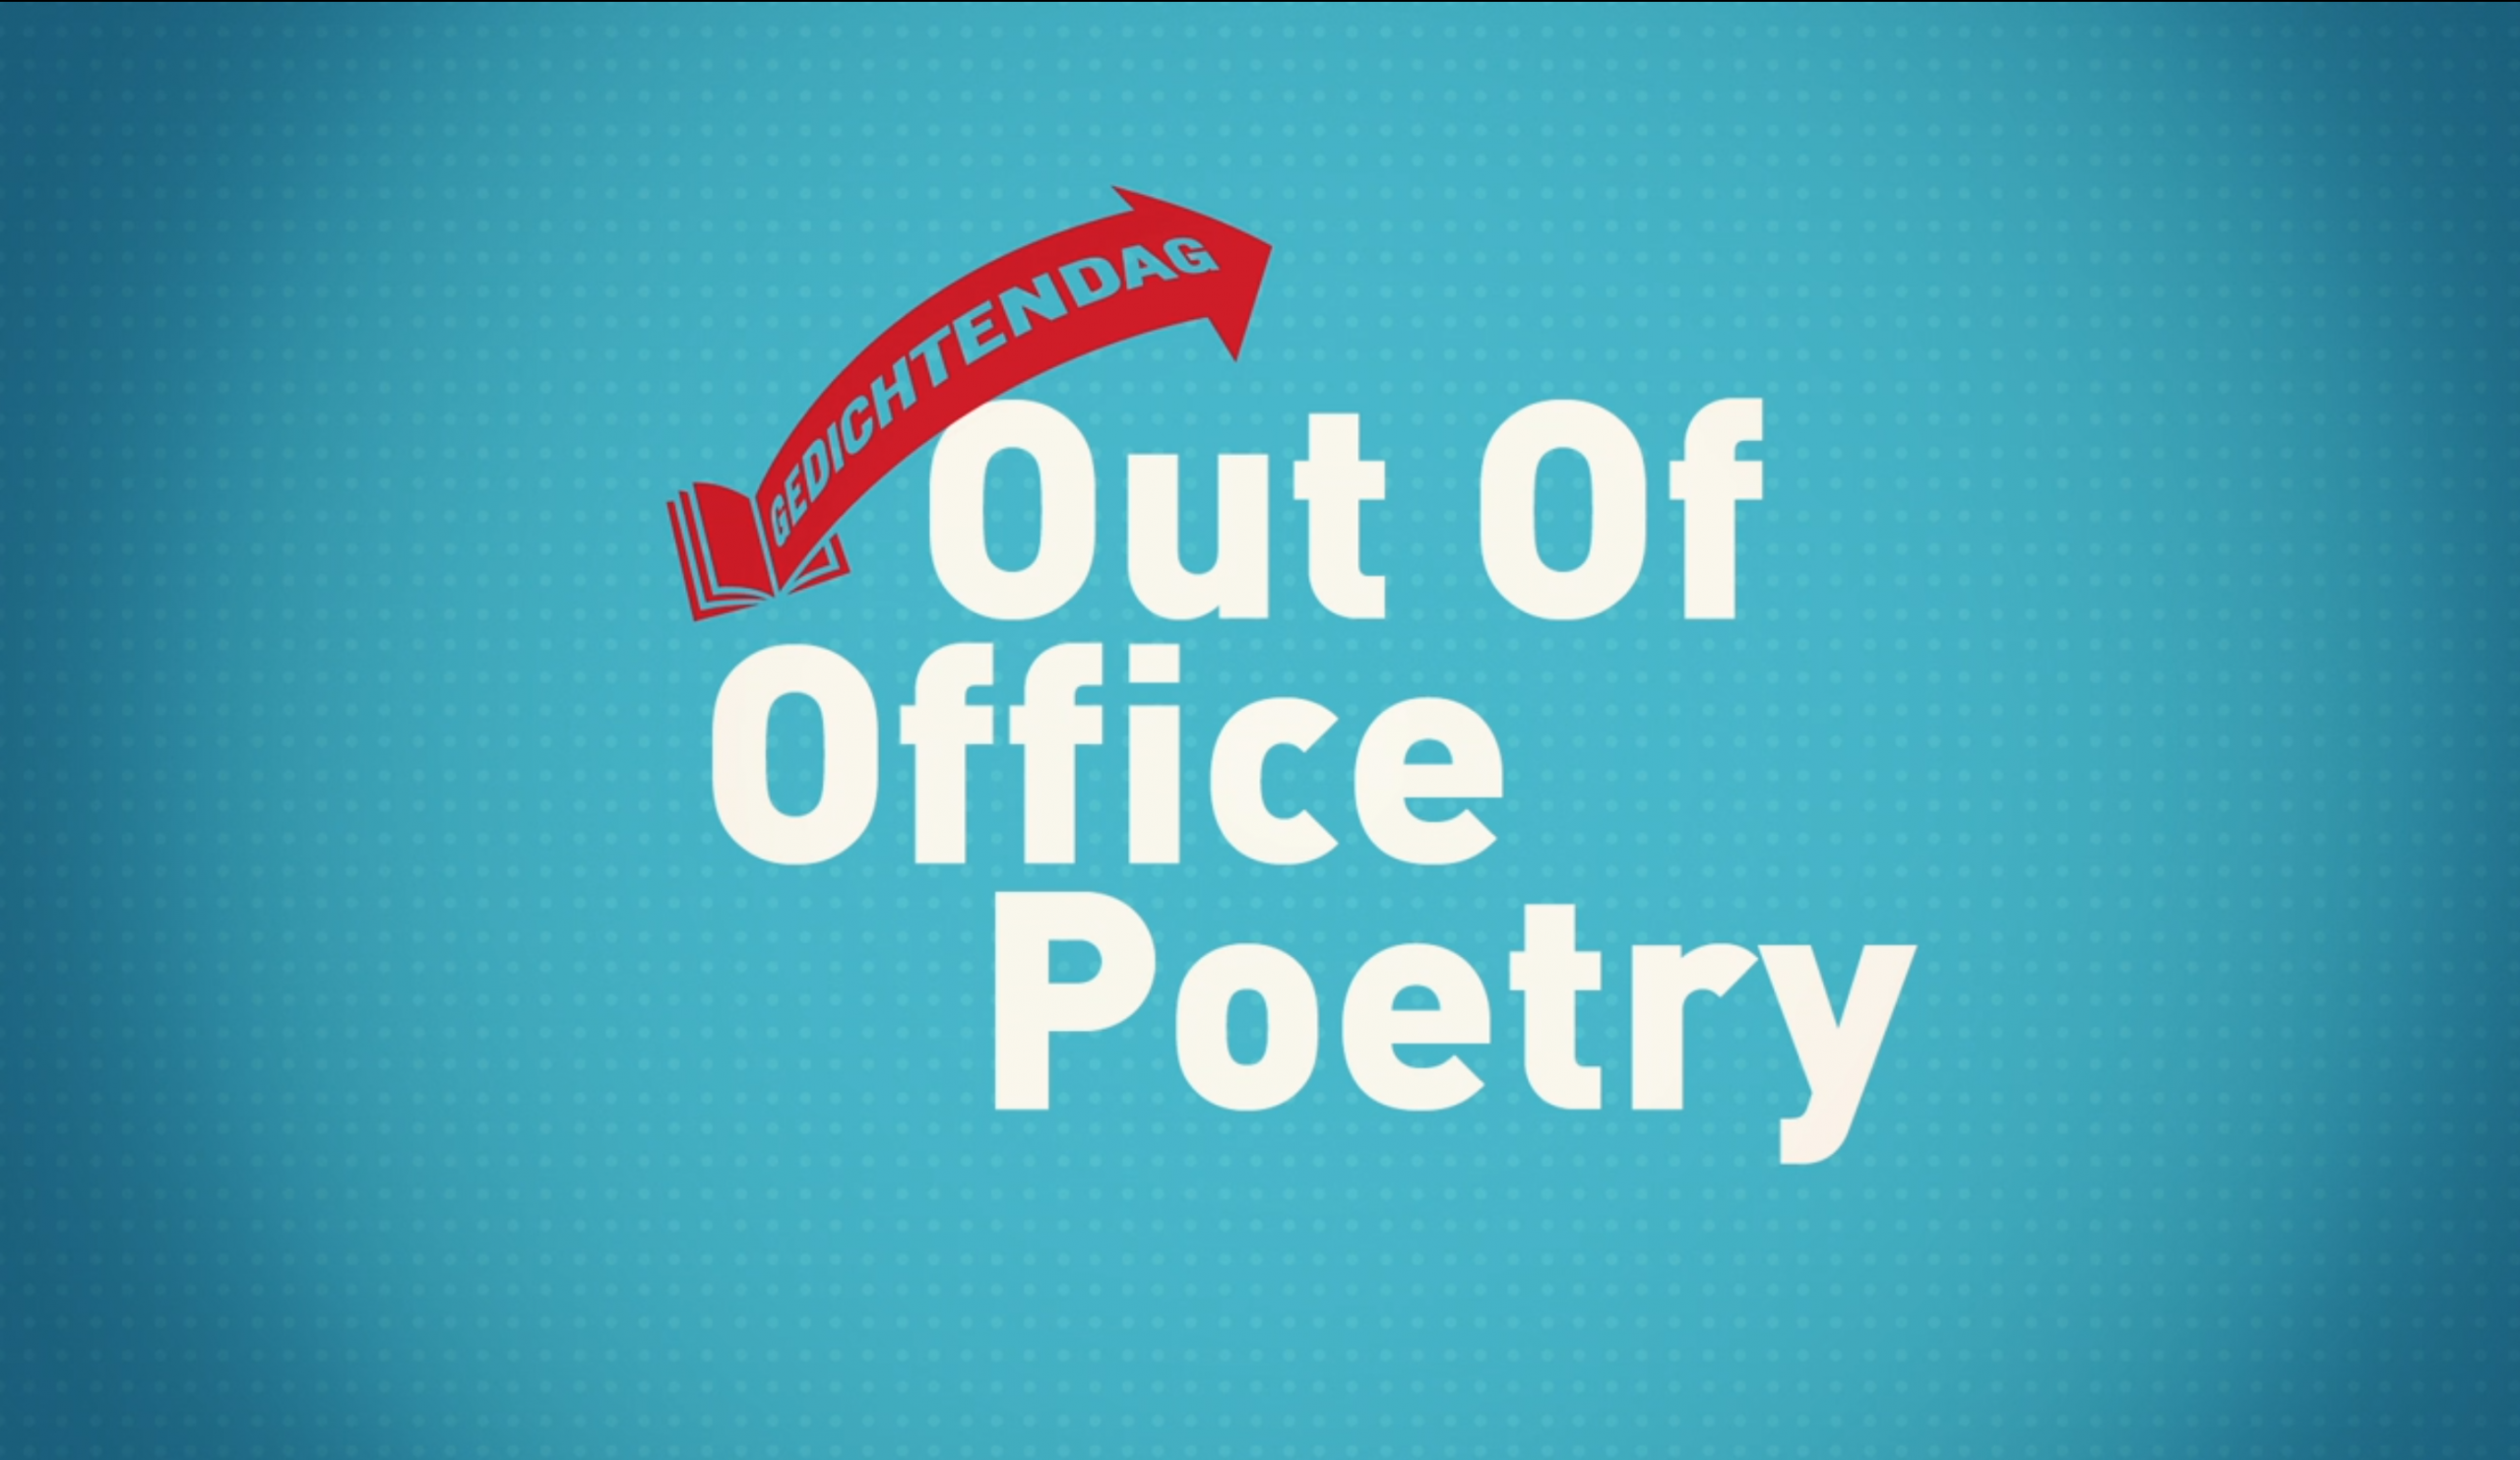 Out of office poetry